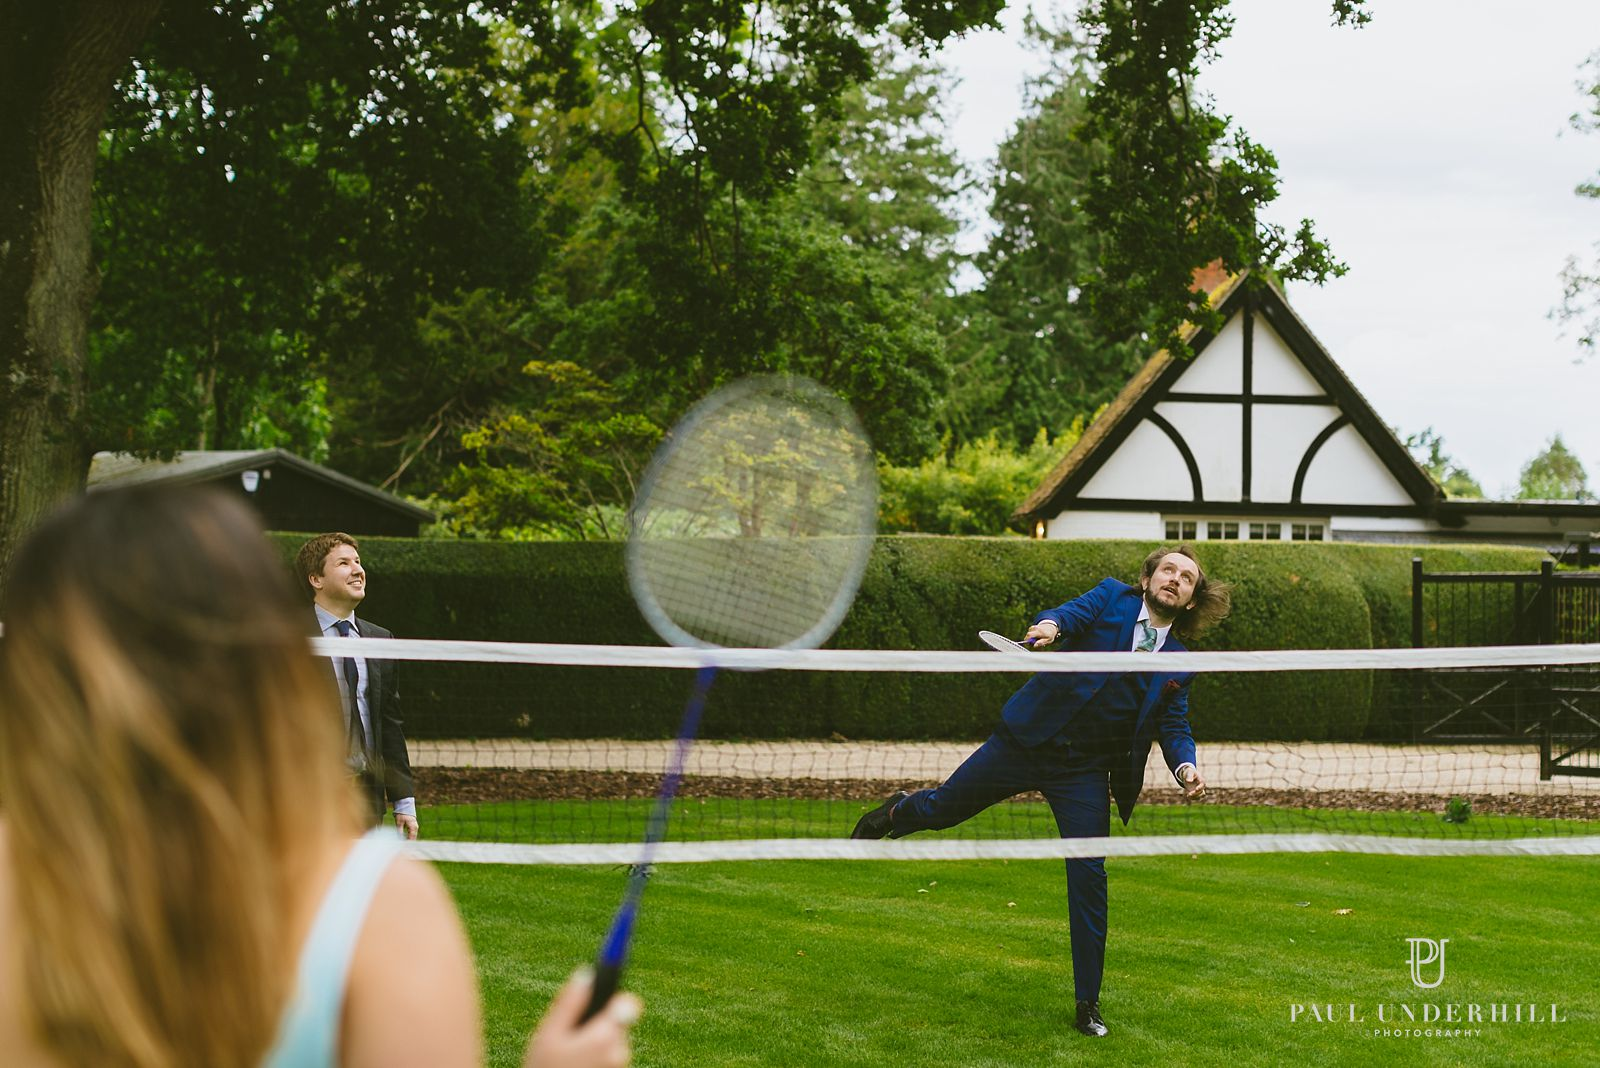 Guests playing lawn games Wiltshire wedding